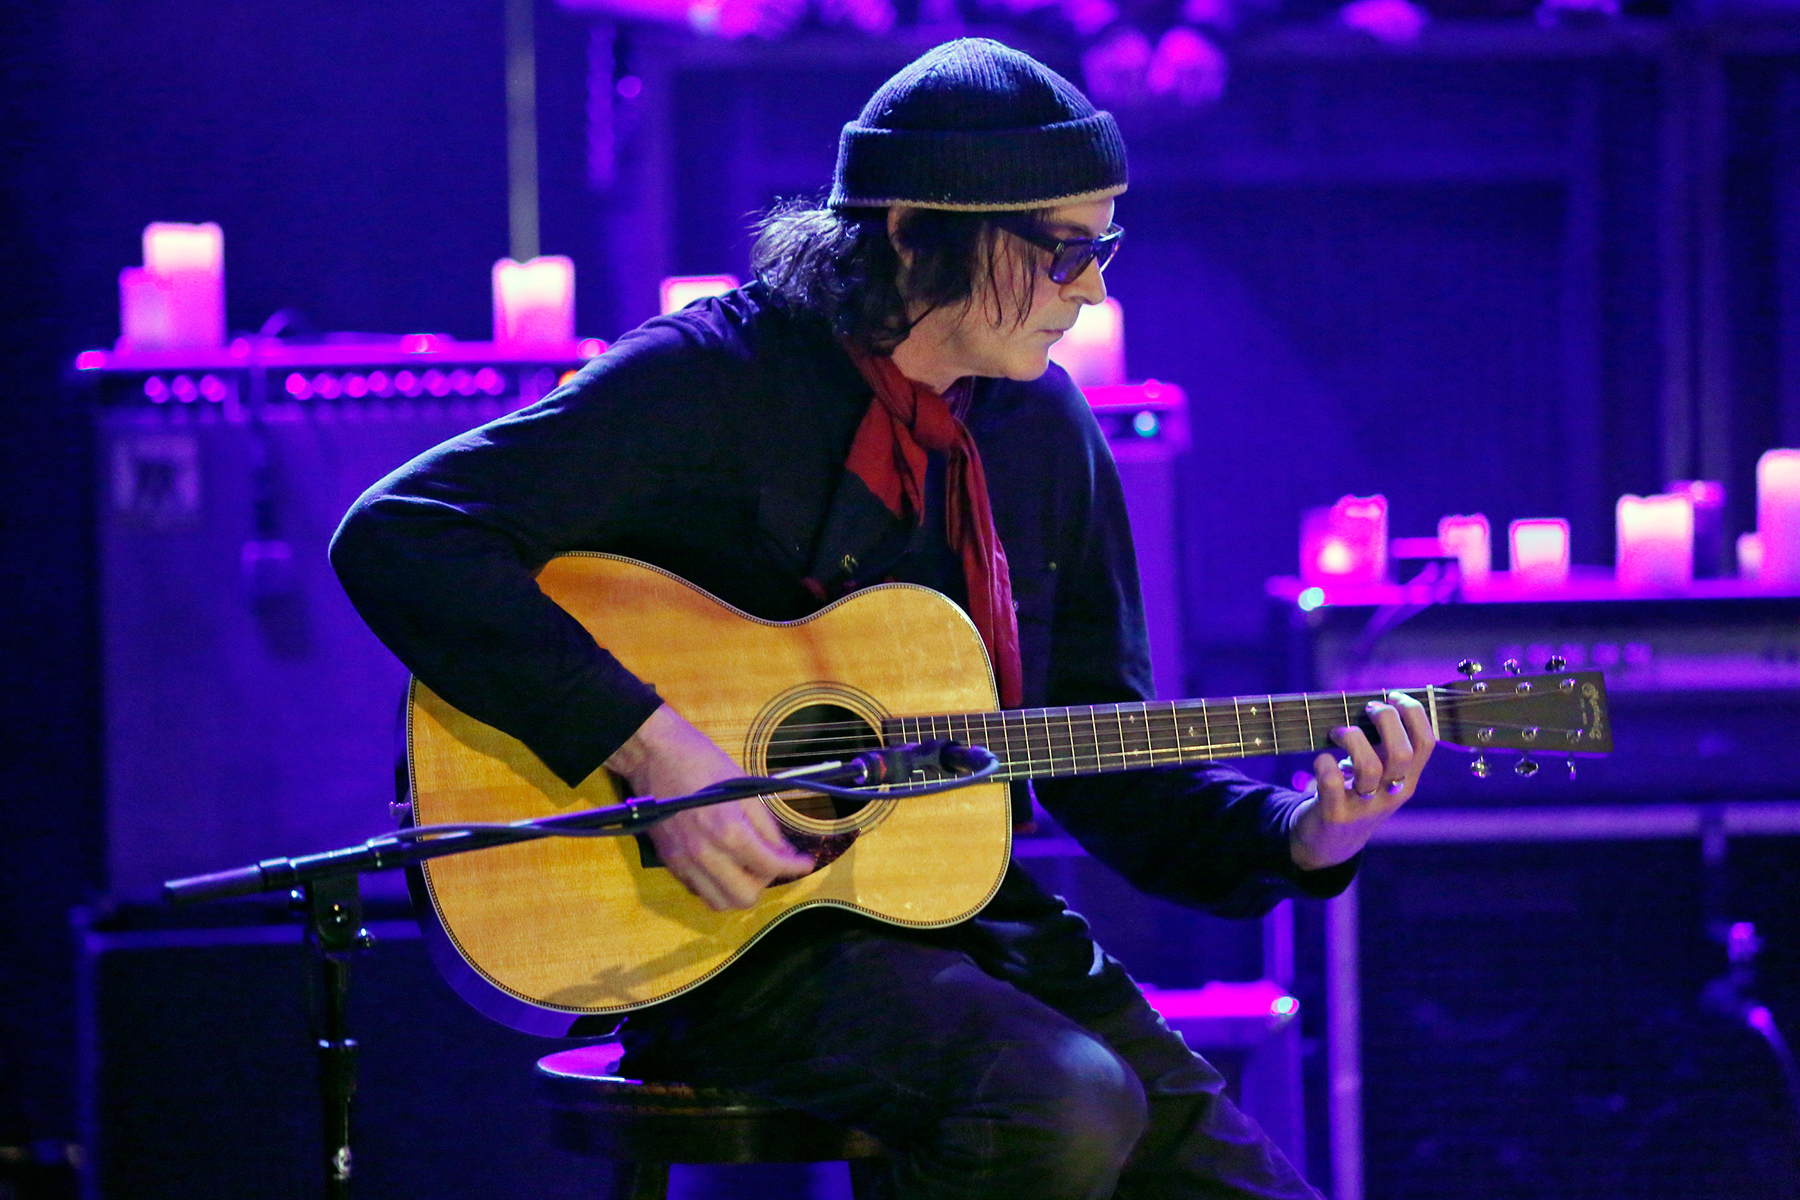 David Roback, Mazzy Star Co-Founder, Dead at 61 - EpicNews